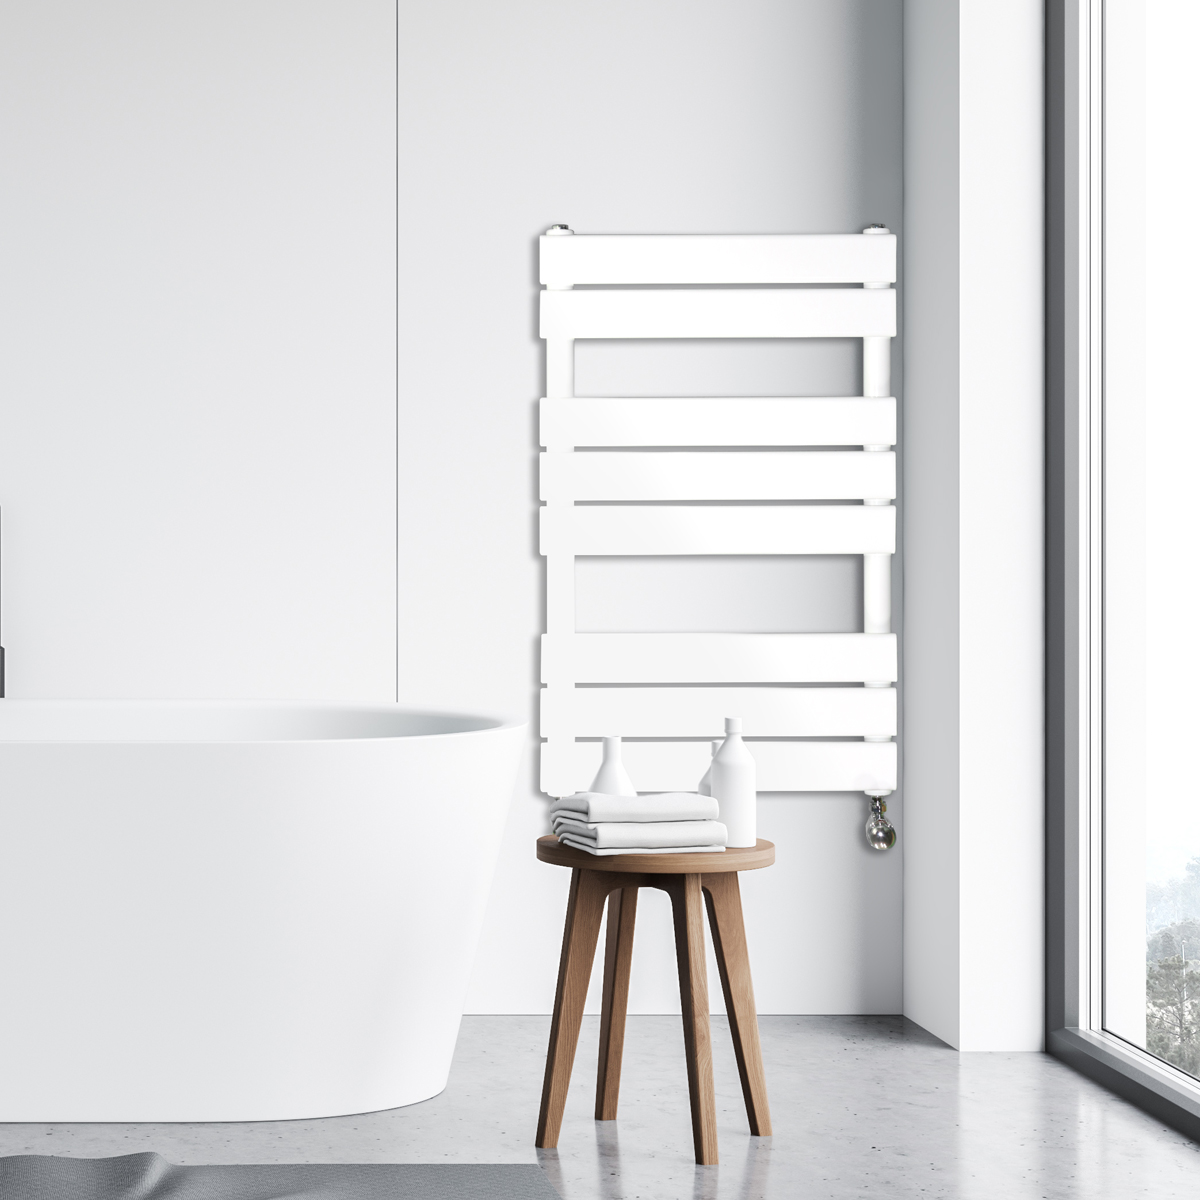 Adige Designer Towel Radiator White Small RAD-AF-FR01004W